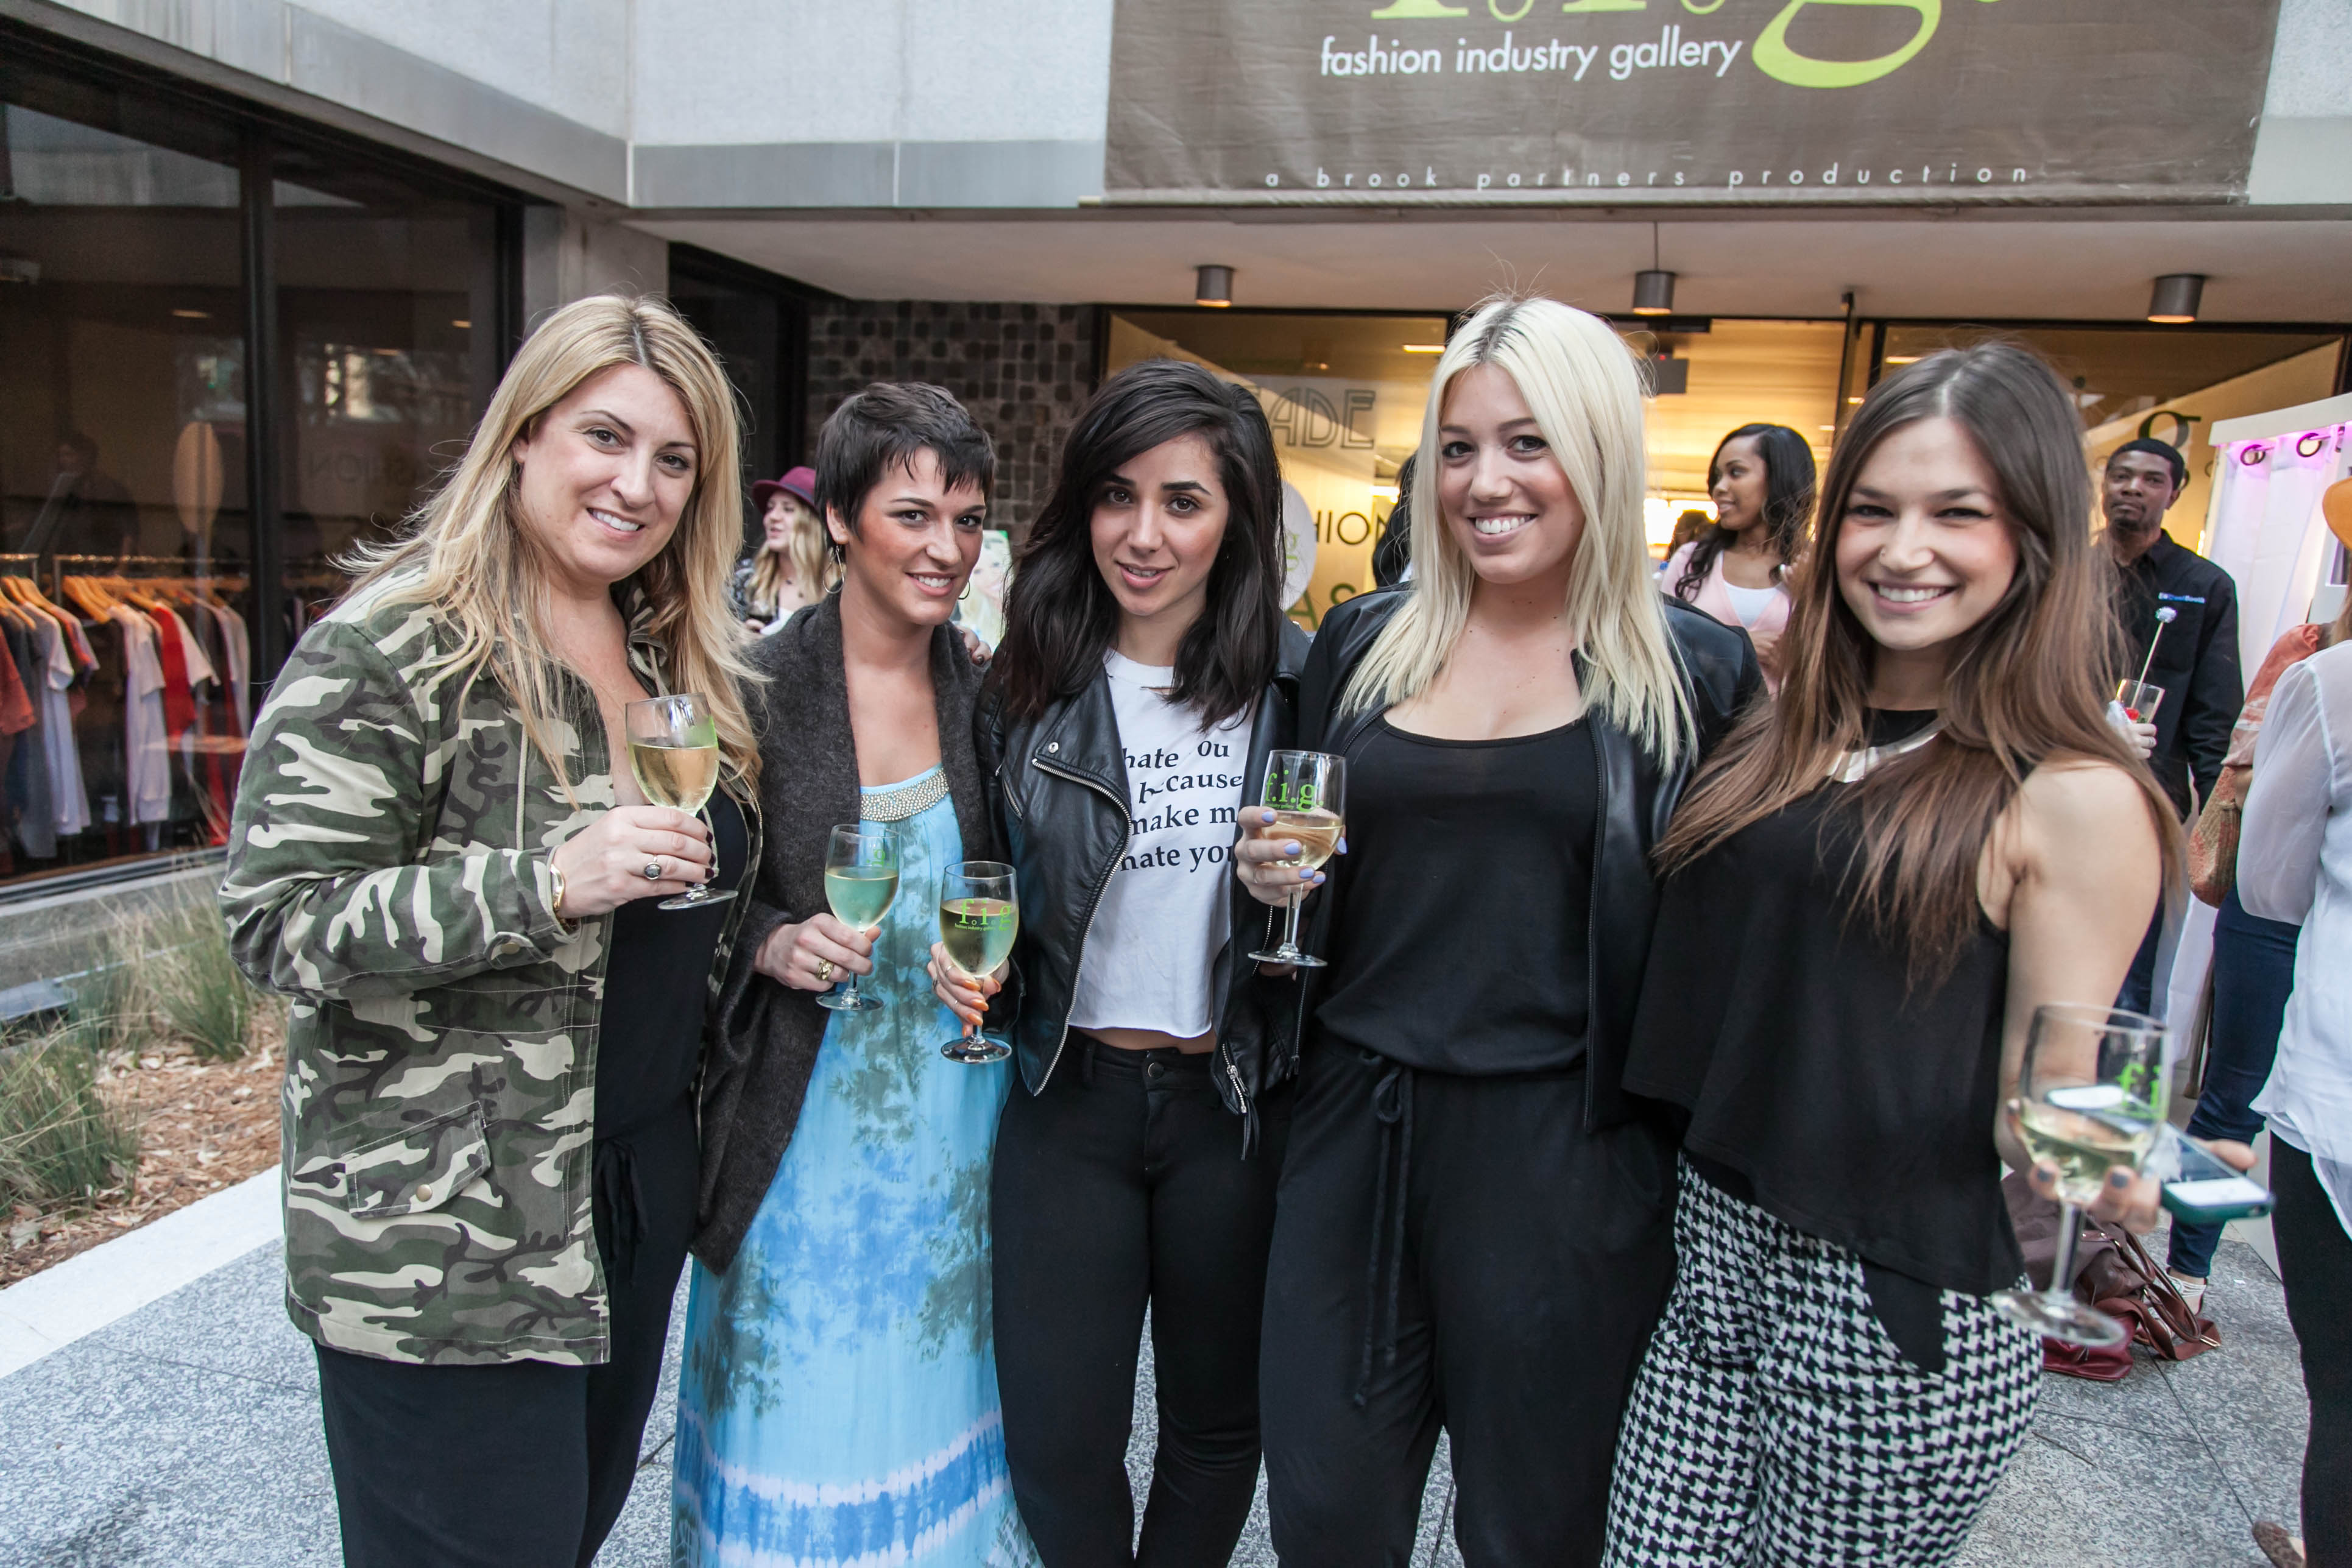 Fashion industry gallery -  March 2014 Market Fall I